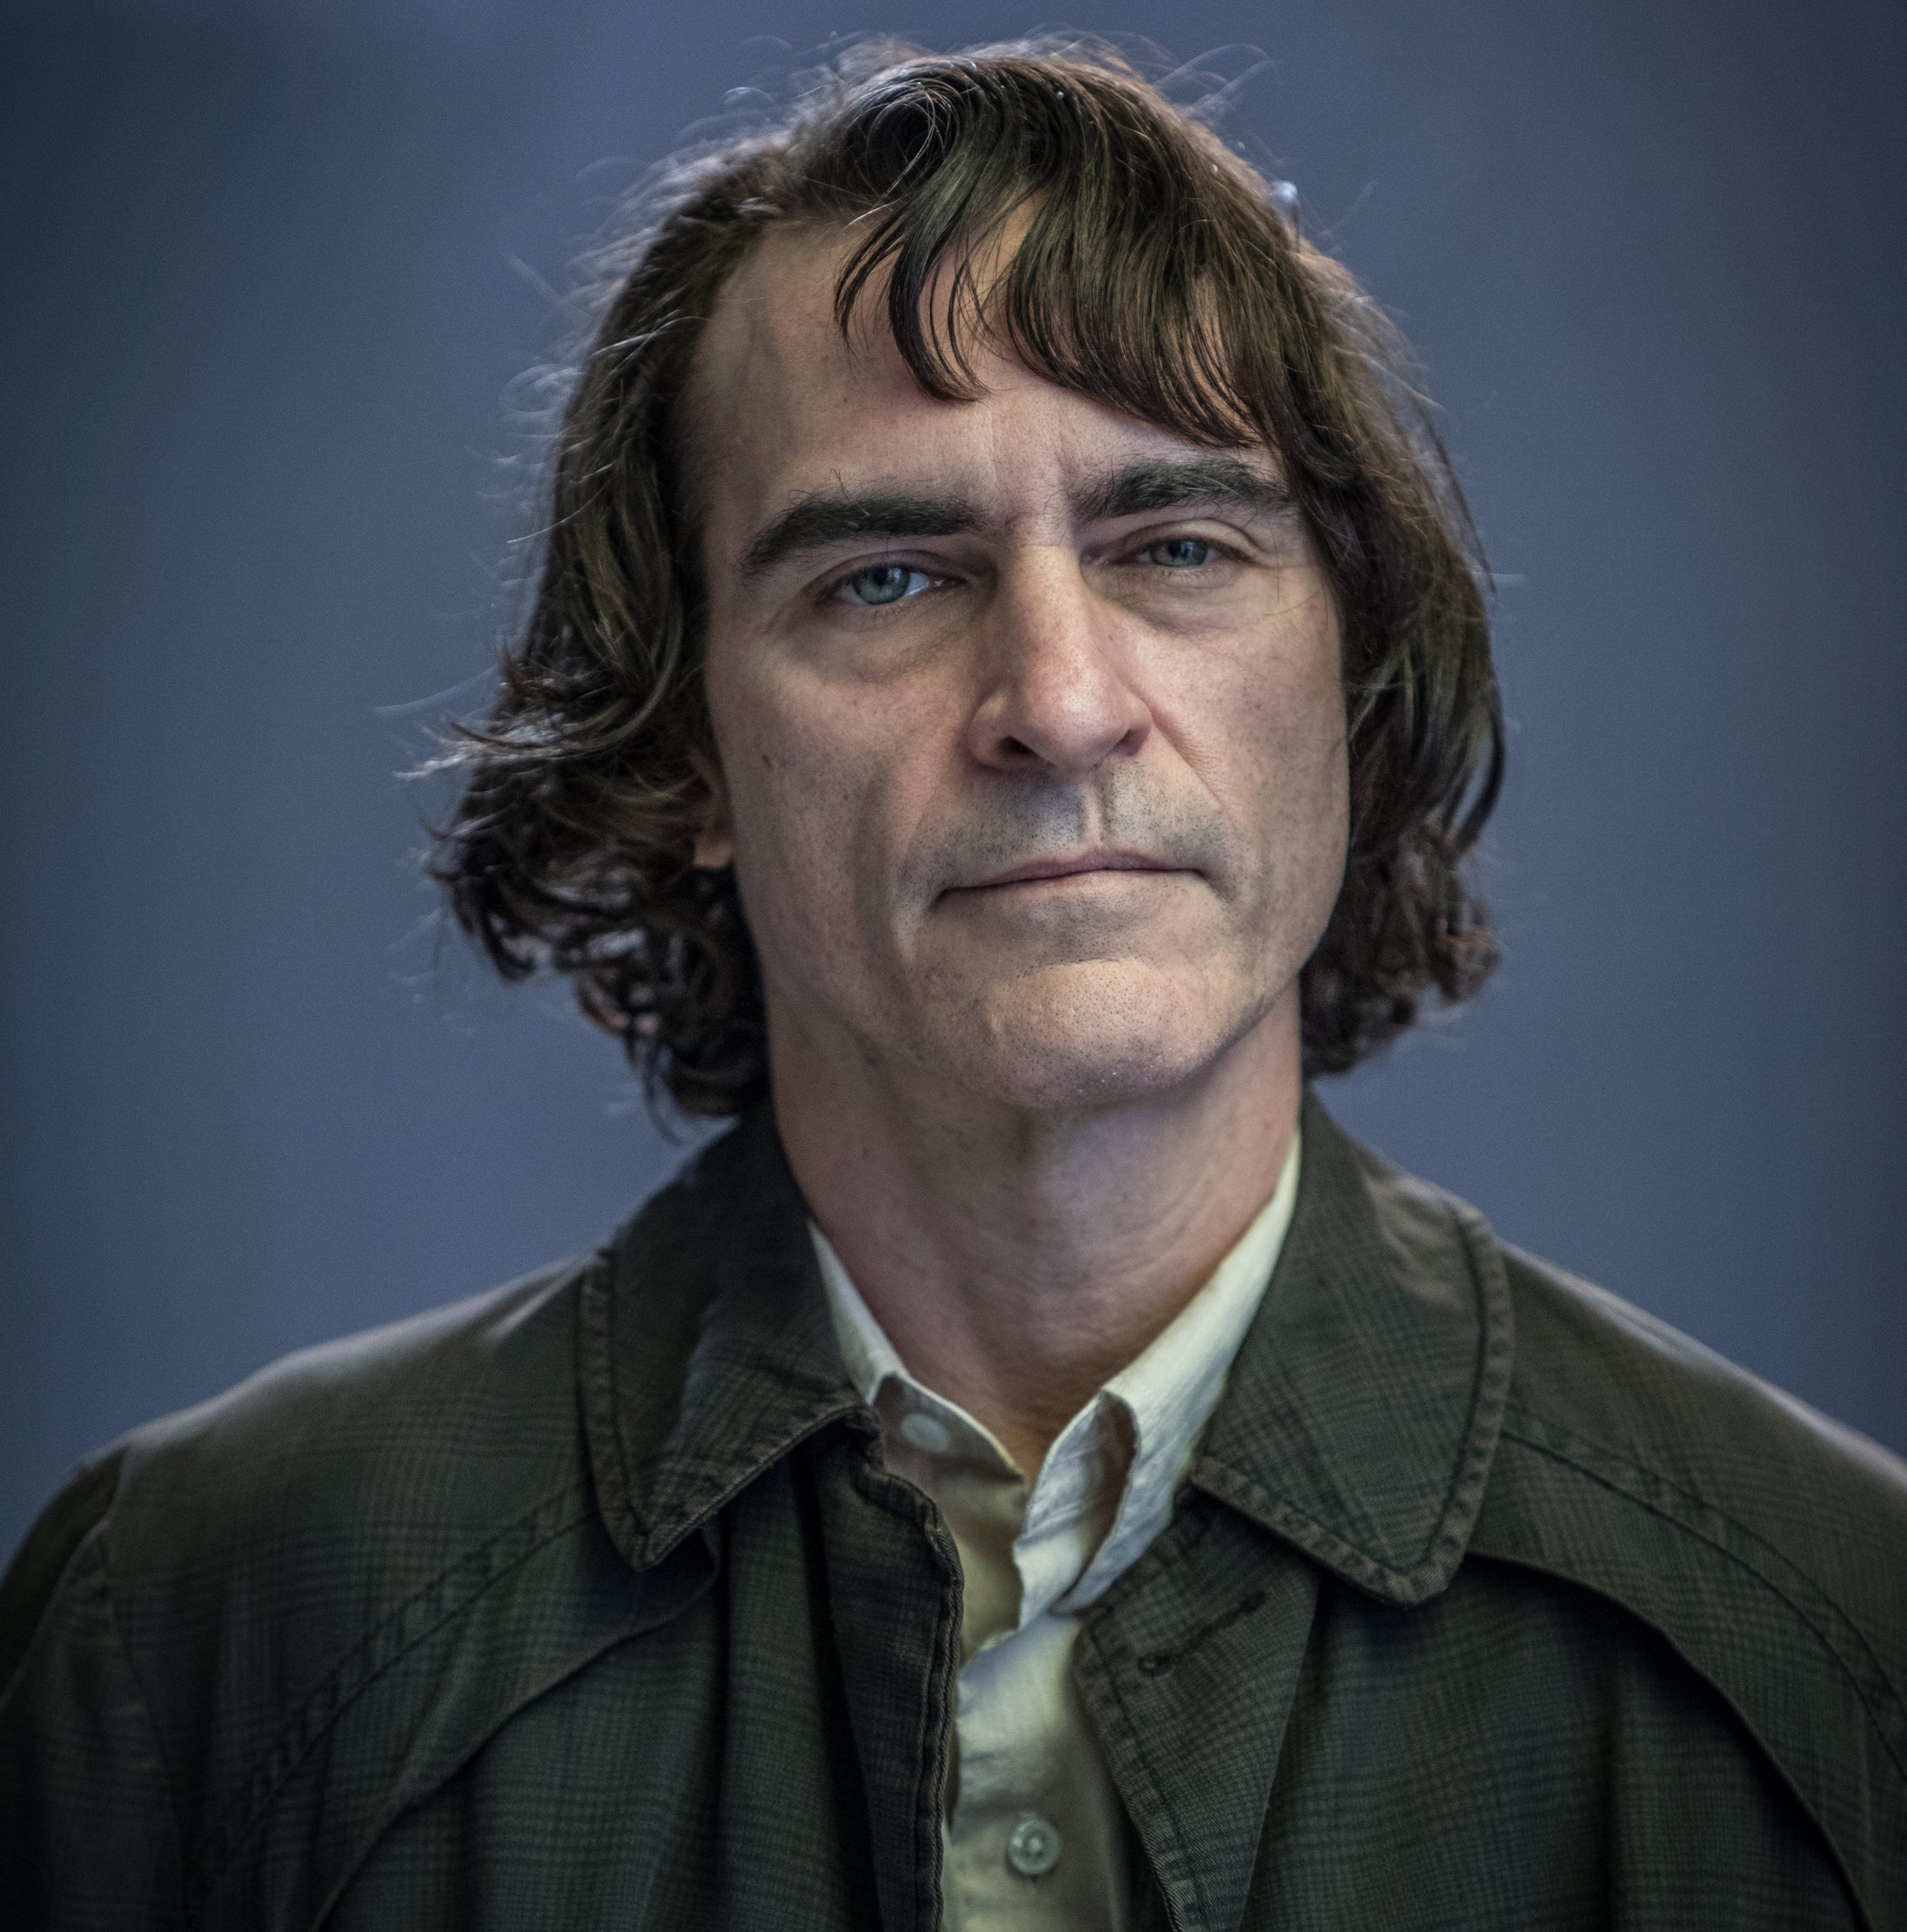 Joker Movie Trailer Release Date Set Photos For Joaquin Phoenix